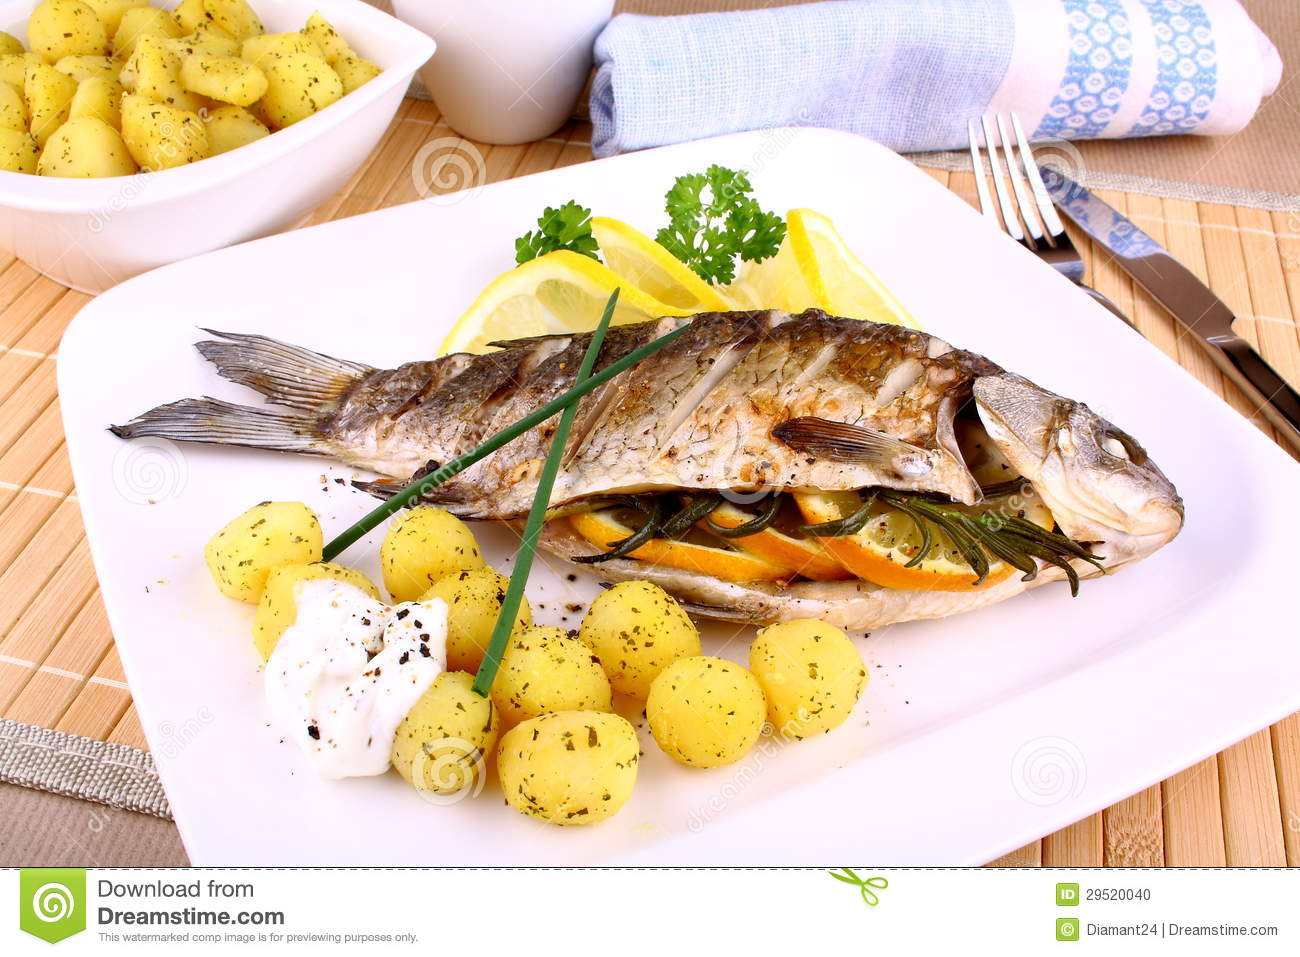 Why is lemon served with Fish - answers.com